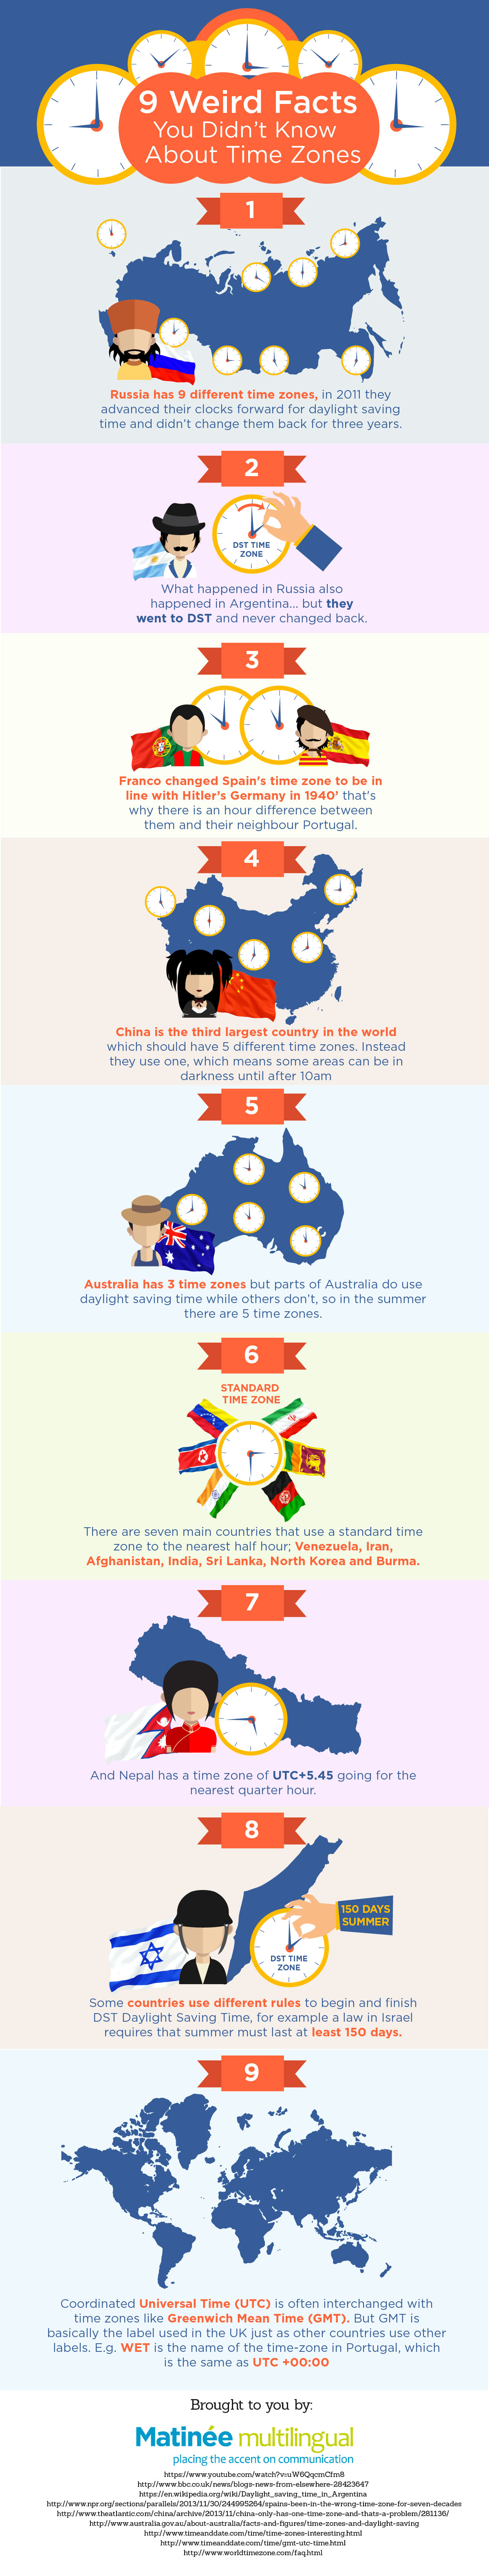 Weird and Whacko Facts about International Time Zones - Infographic